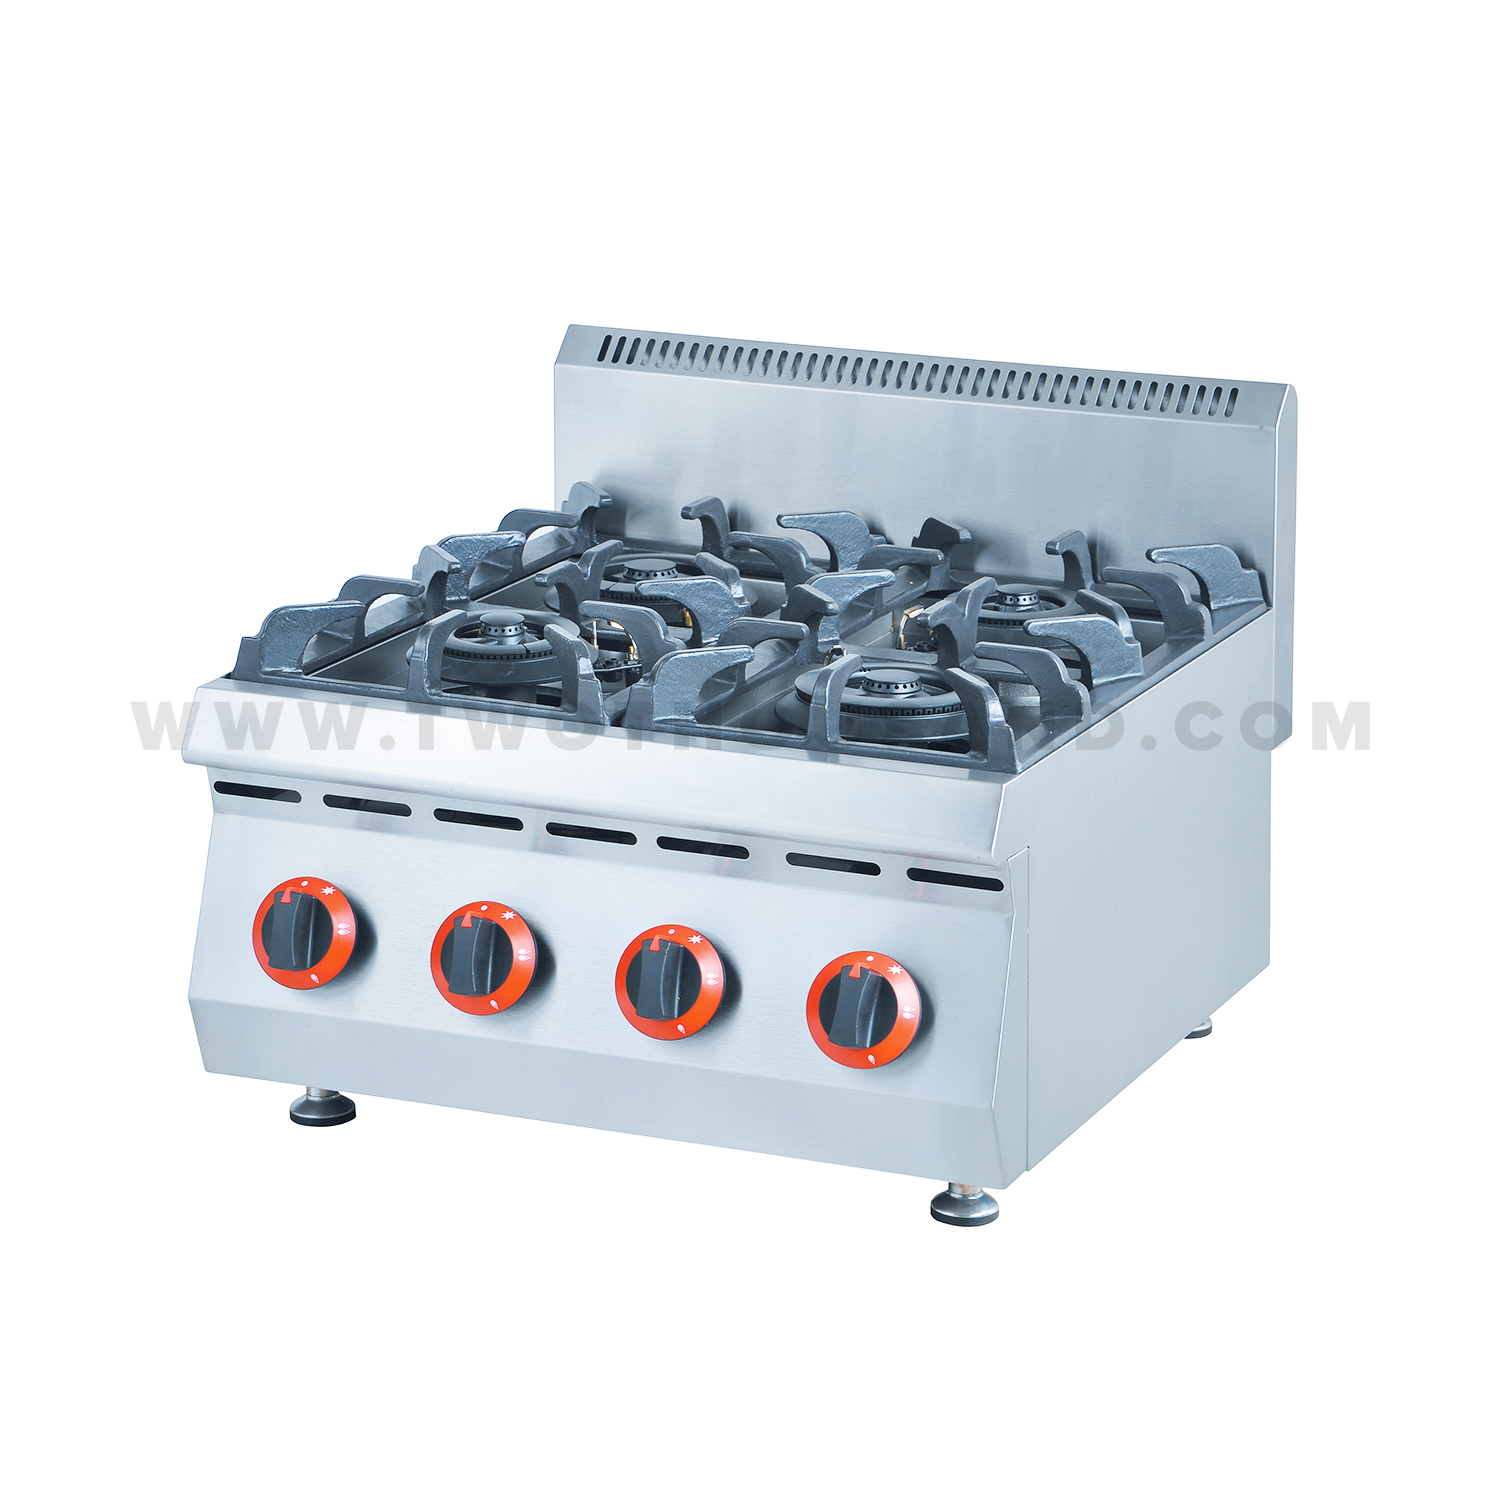 Gas Countertop Stoves 4 Burners Countertop Commercial Range Gas Hot Plate Tt We275